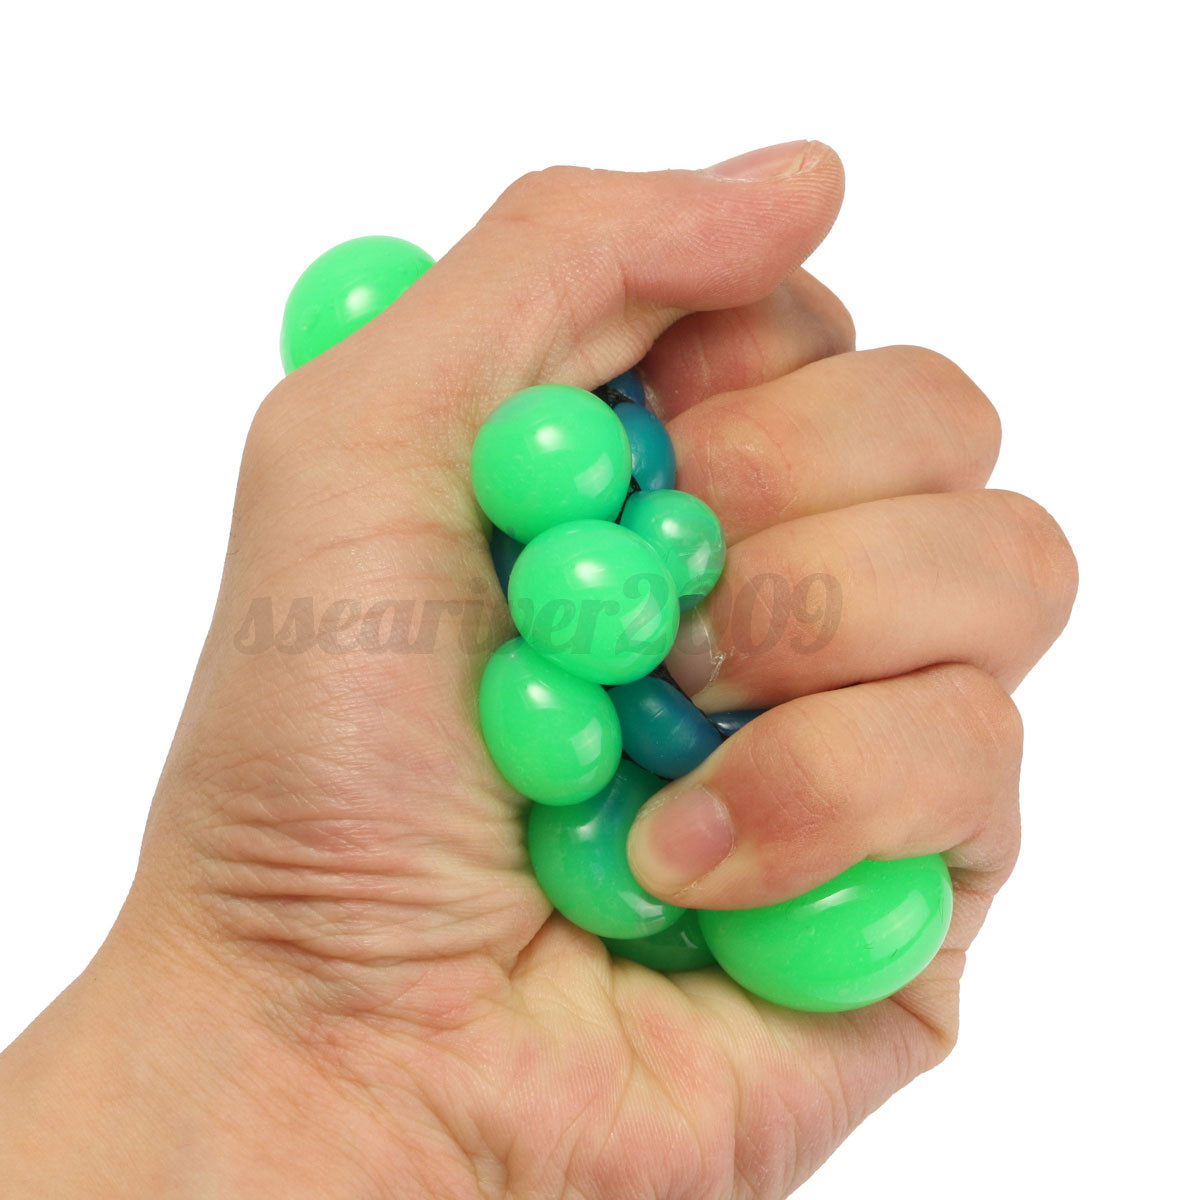 Squishy Ball Neon Mesh Squishy Ball : Novelty Squishy Colored Mesh Stress Ball Squeeze Stressball Party Bag Fun Gift eBay